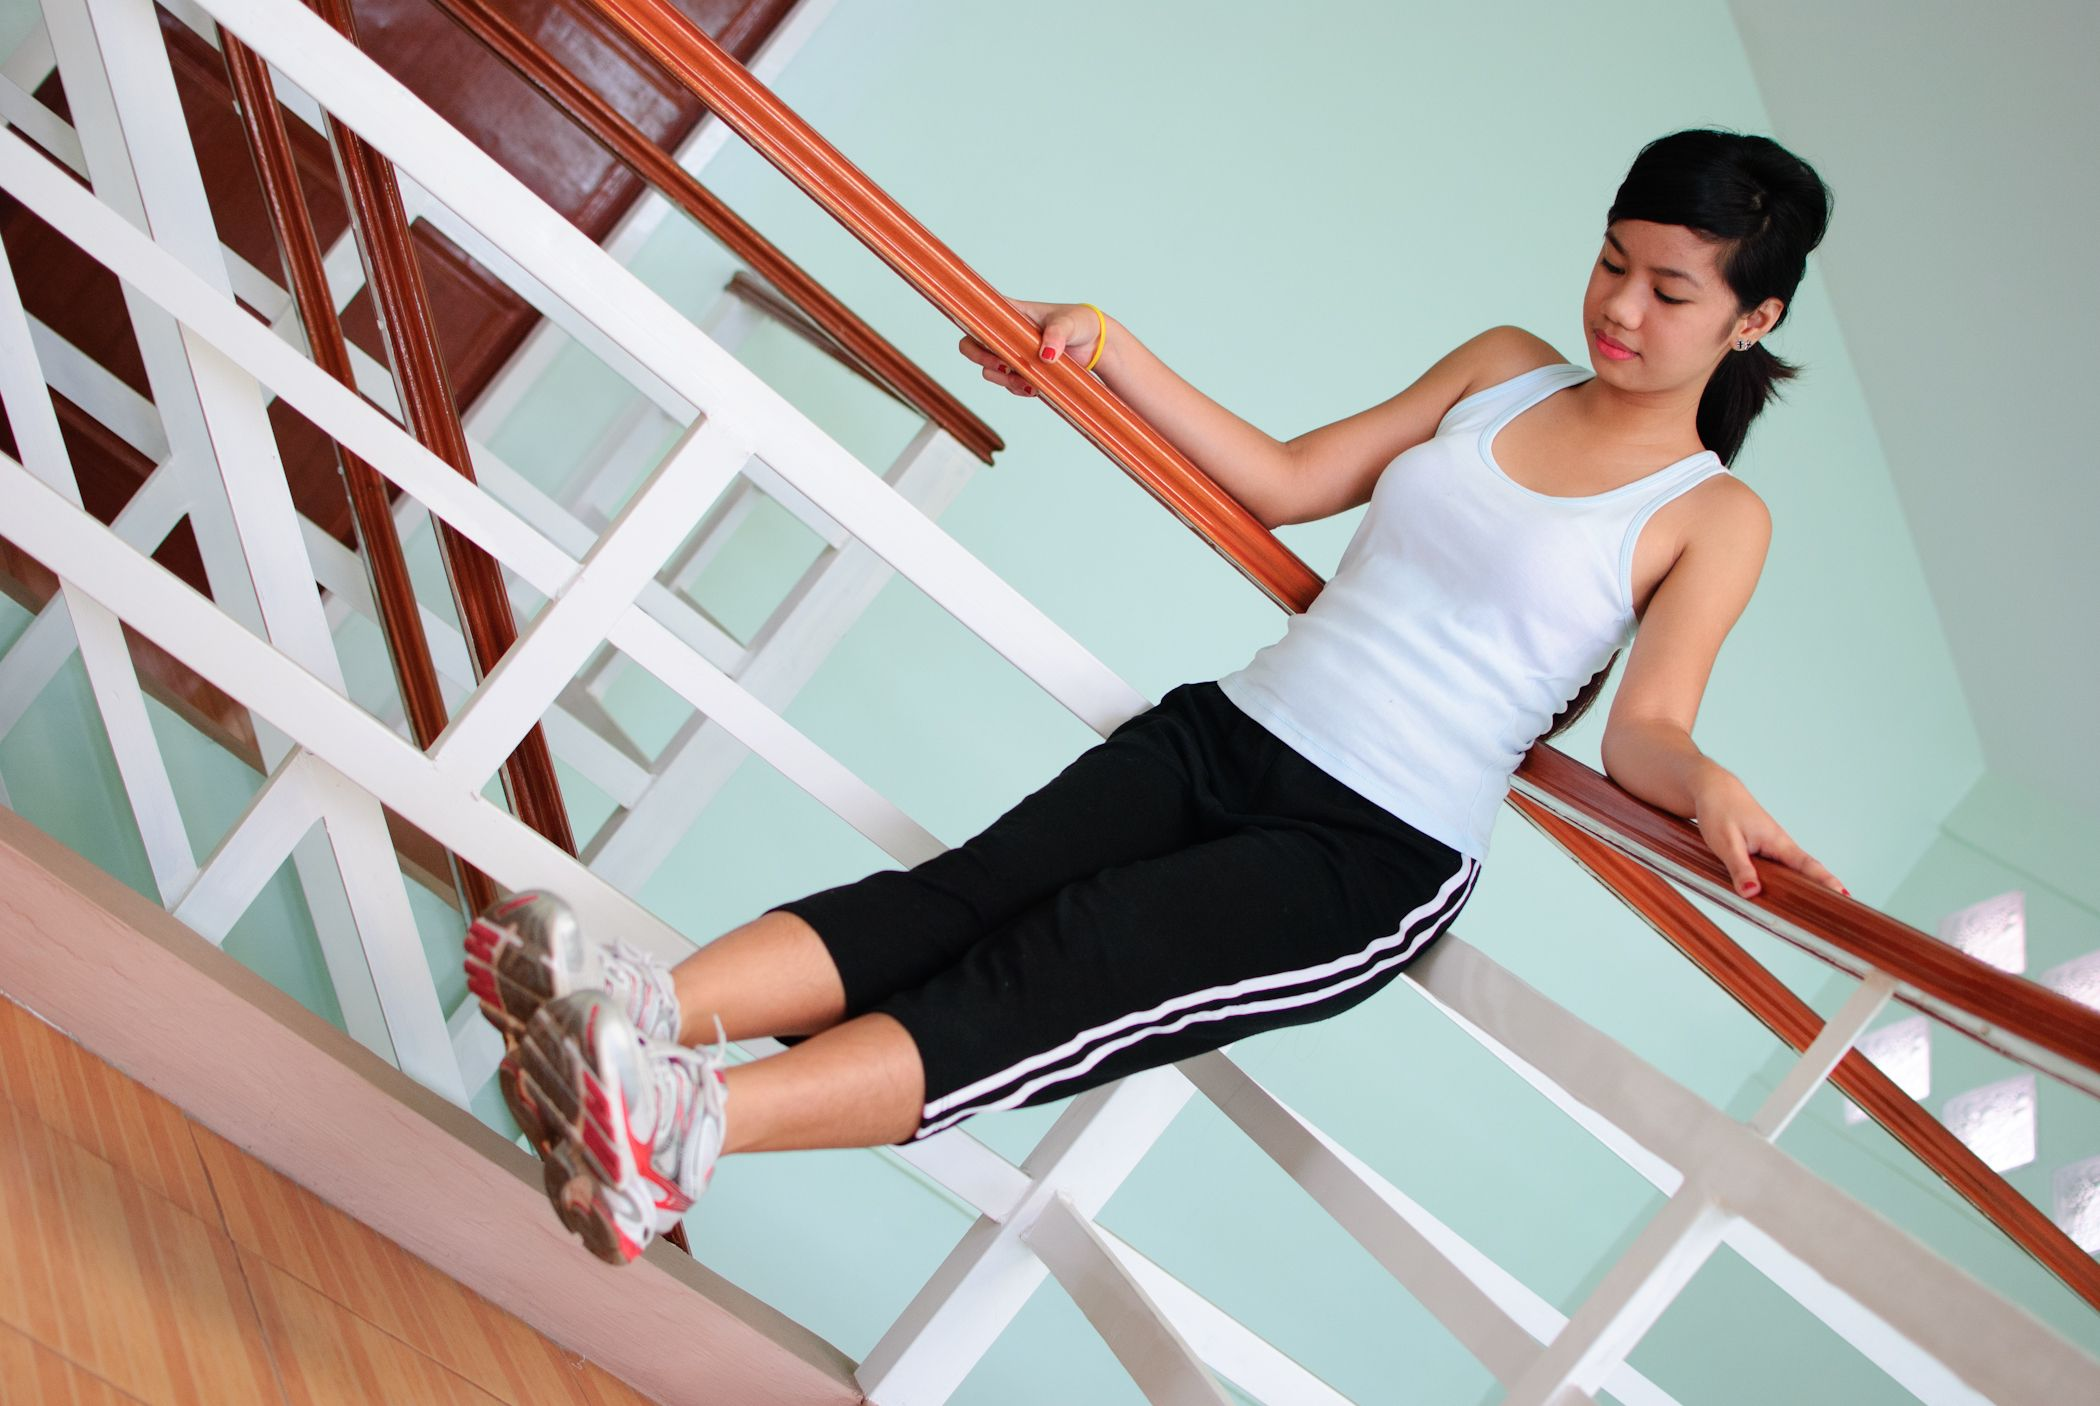 How to Do Leg Lifts in 12 Steps